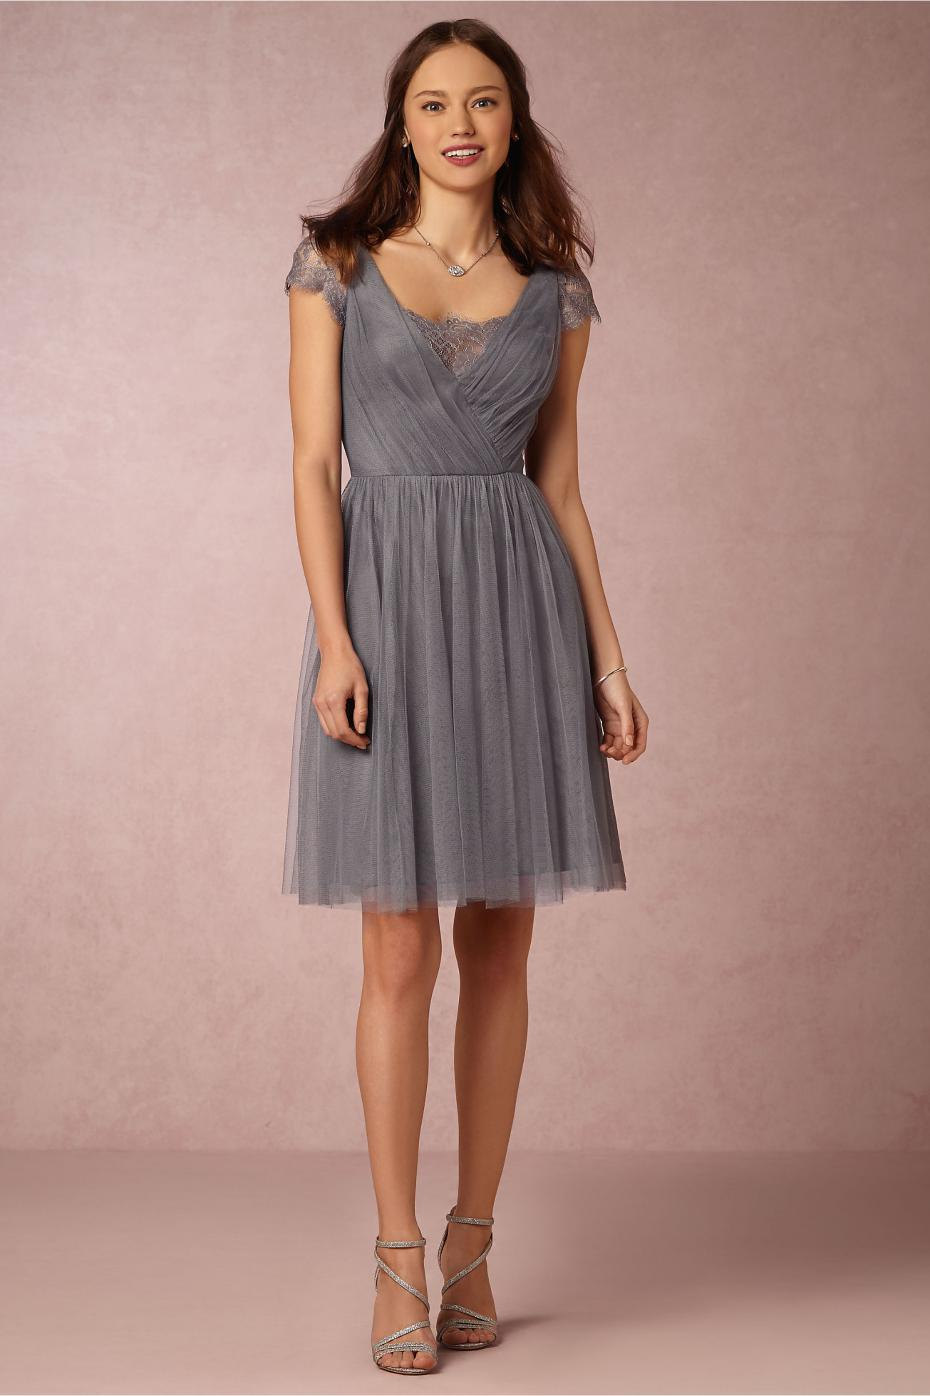 Wedding Grey Bridesmaid Dress popular grey bridesmaid dress buy cheap lots tea length dresses with short sleeves v neck chiffon ruffles lace silver dress